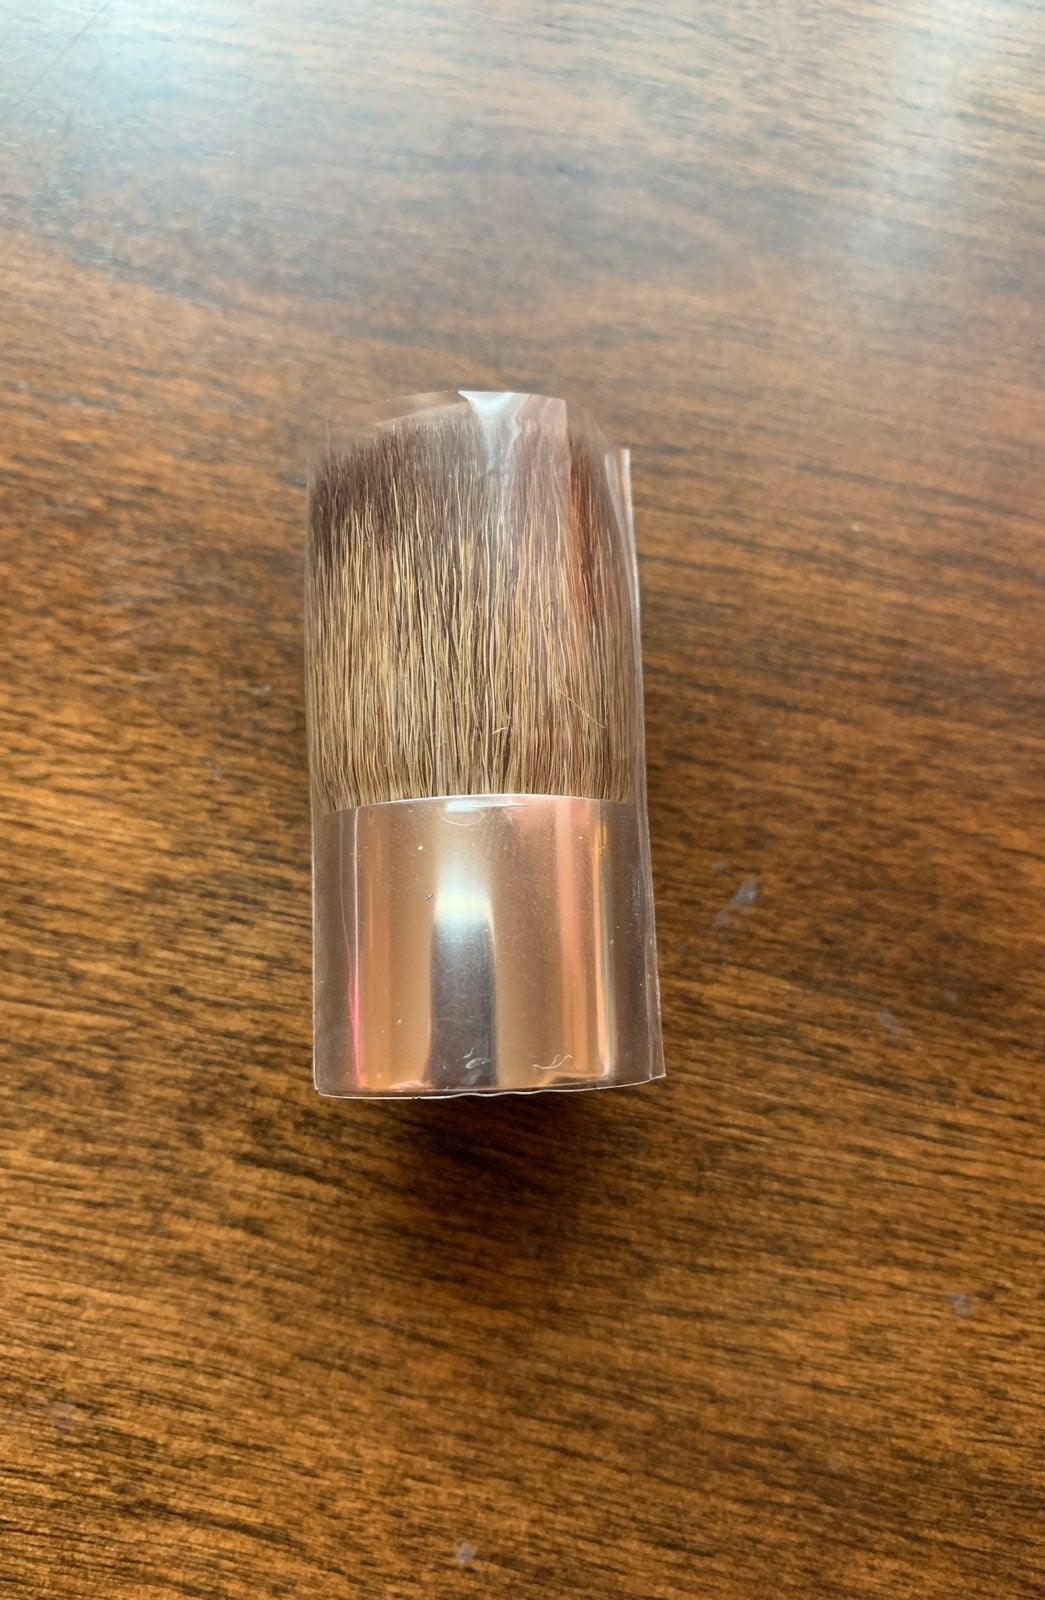 Dior Beauty Mini Deluxe Face Brush